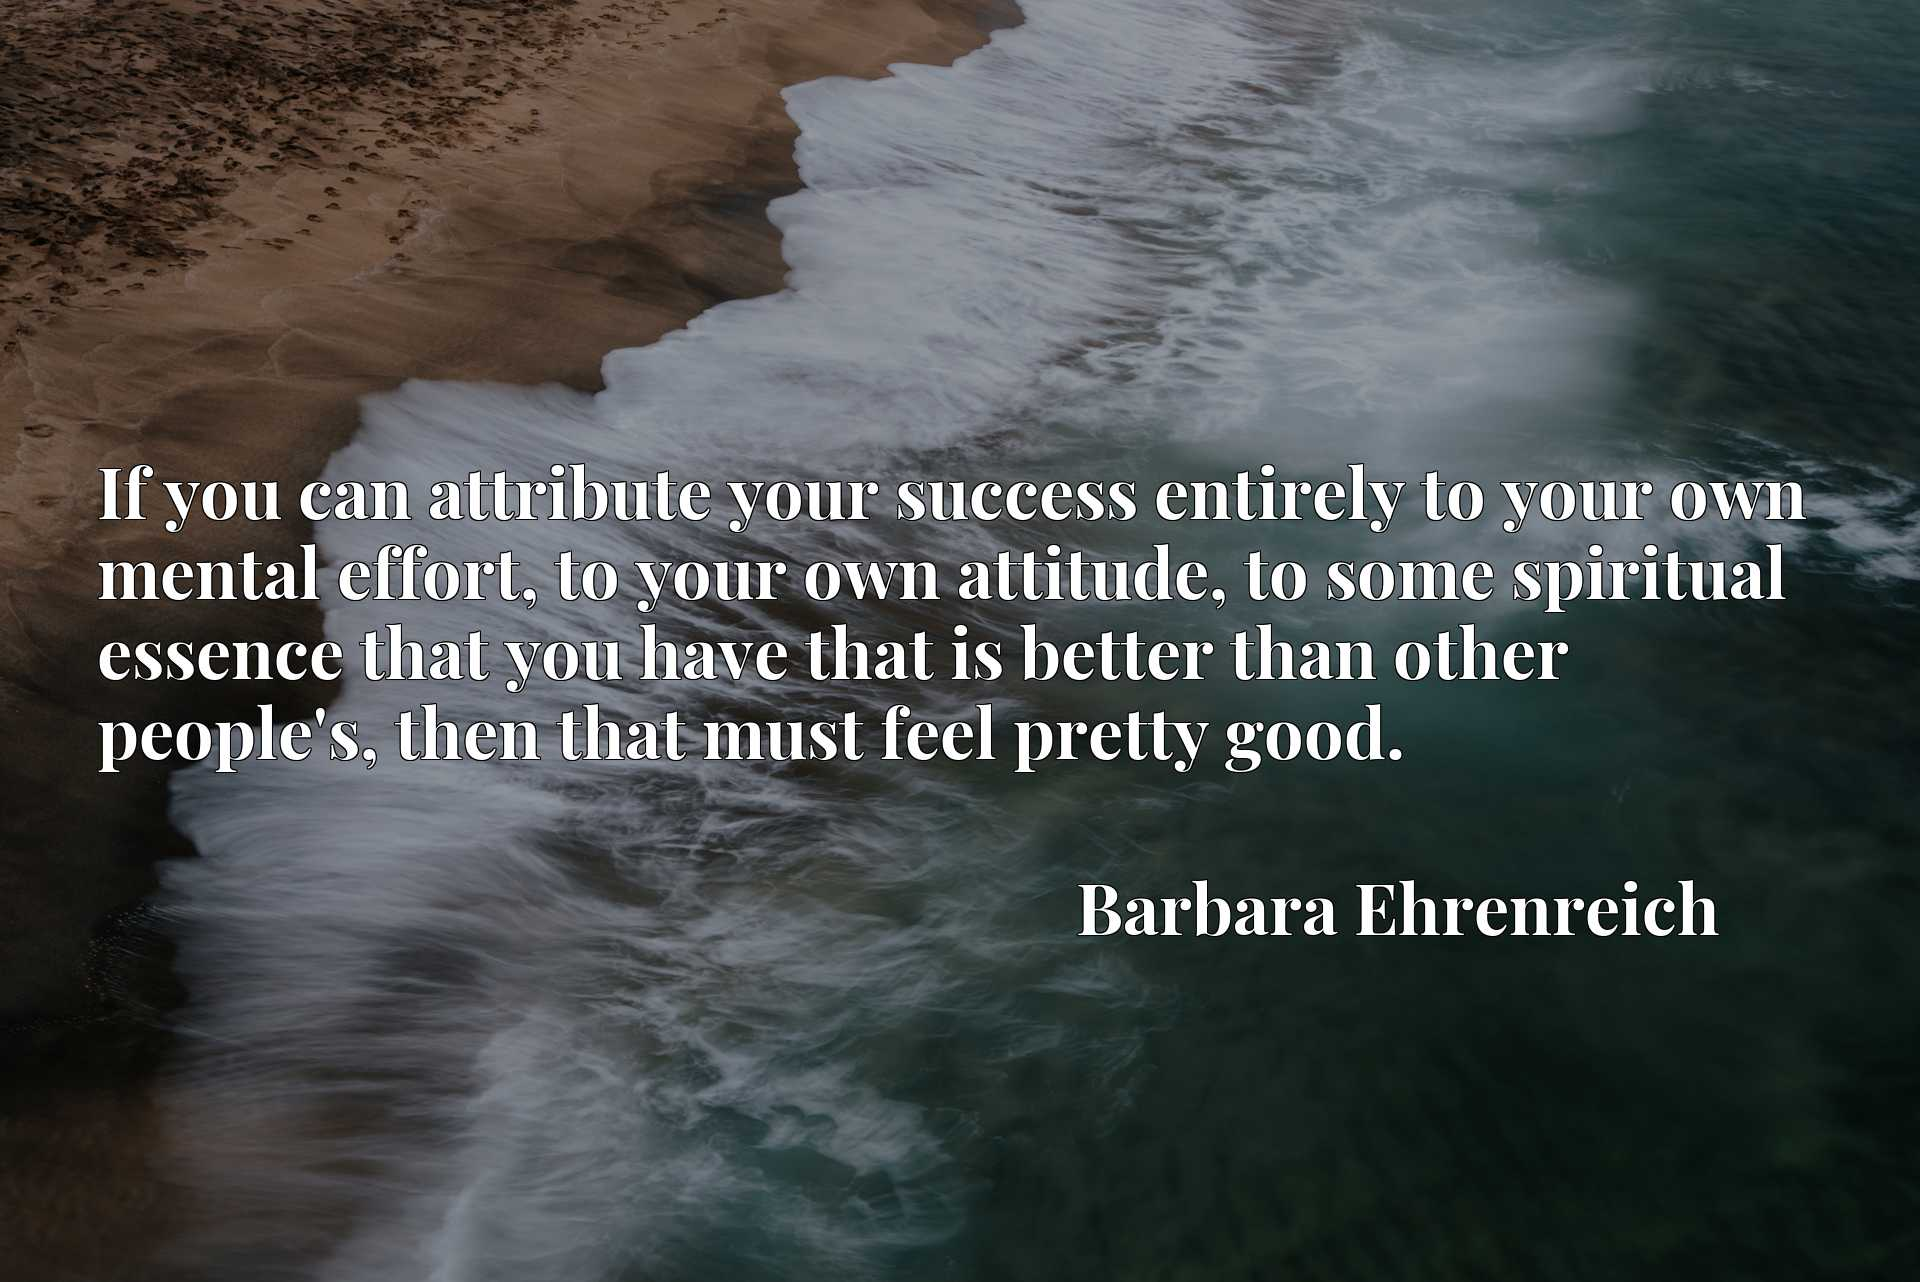 If you can attribute your success entirely to your own mental effort, to your own attitude, to some spiritual essence that you have that is better than other people's, then that must feel pretty good.